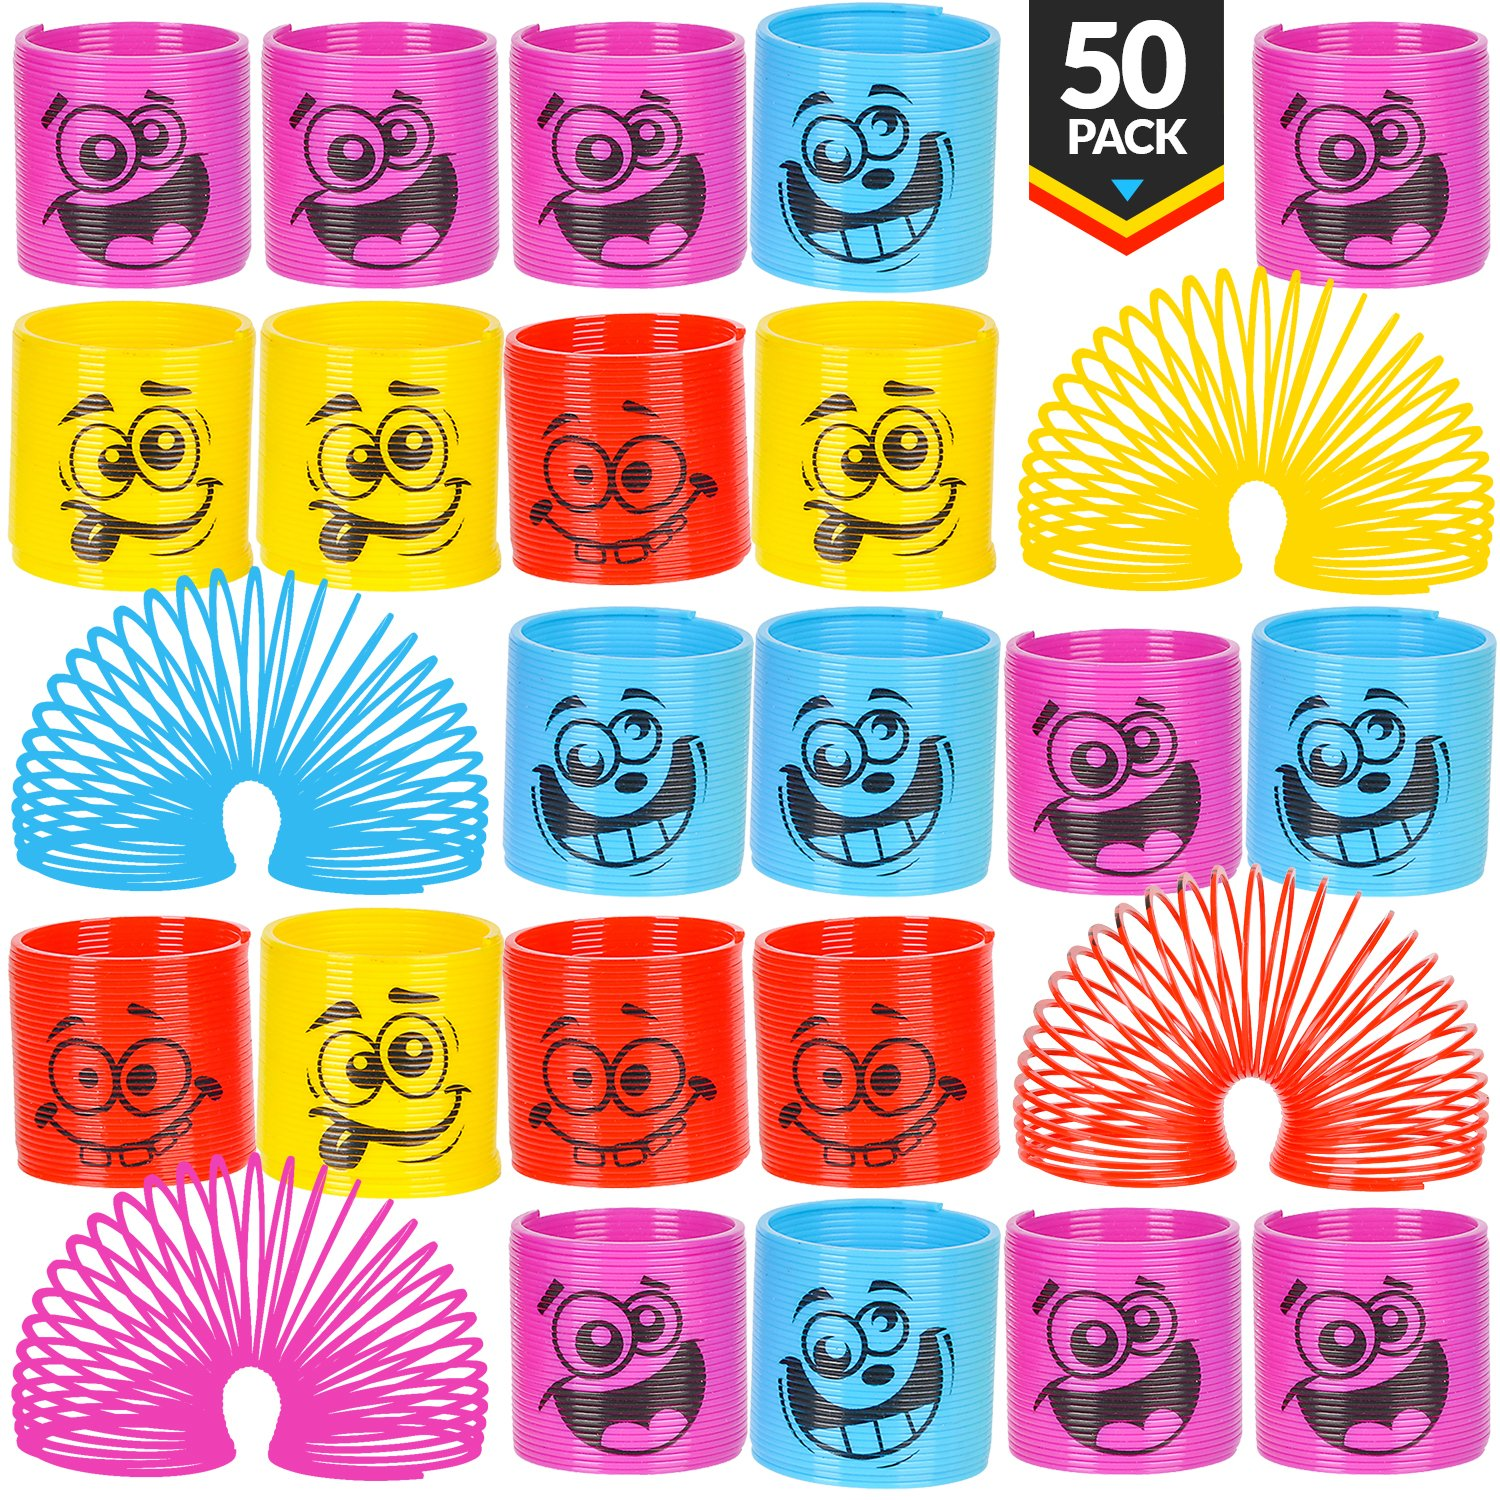 Mega Pack Of 50 Coil Springs - Assorted Emoji Silly Faces And Colors, Mini Spring Toy For Party Favor, Carnival Prize, Gift Bag Filler